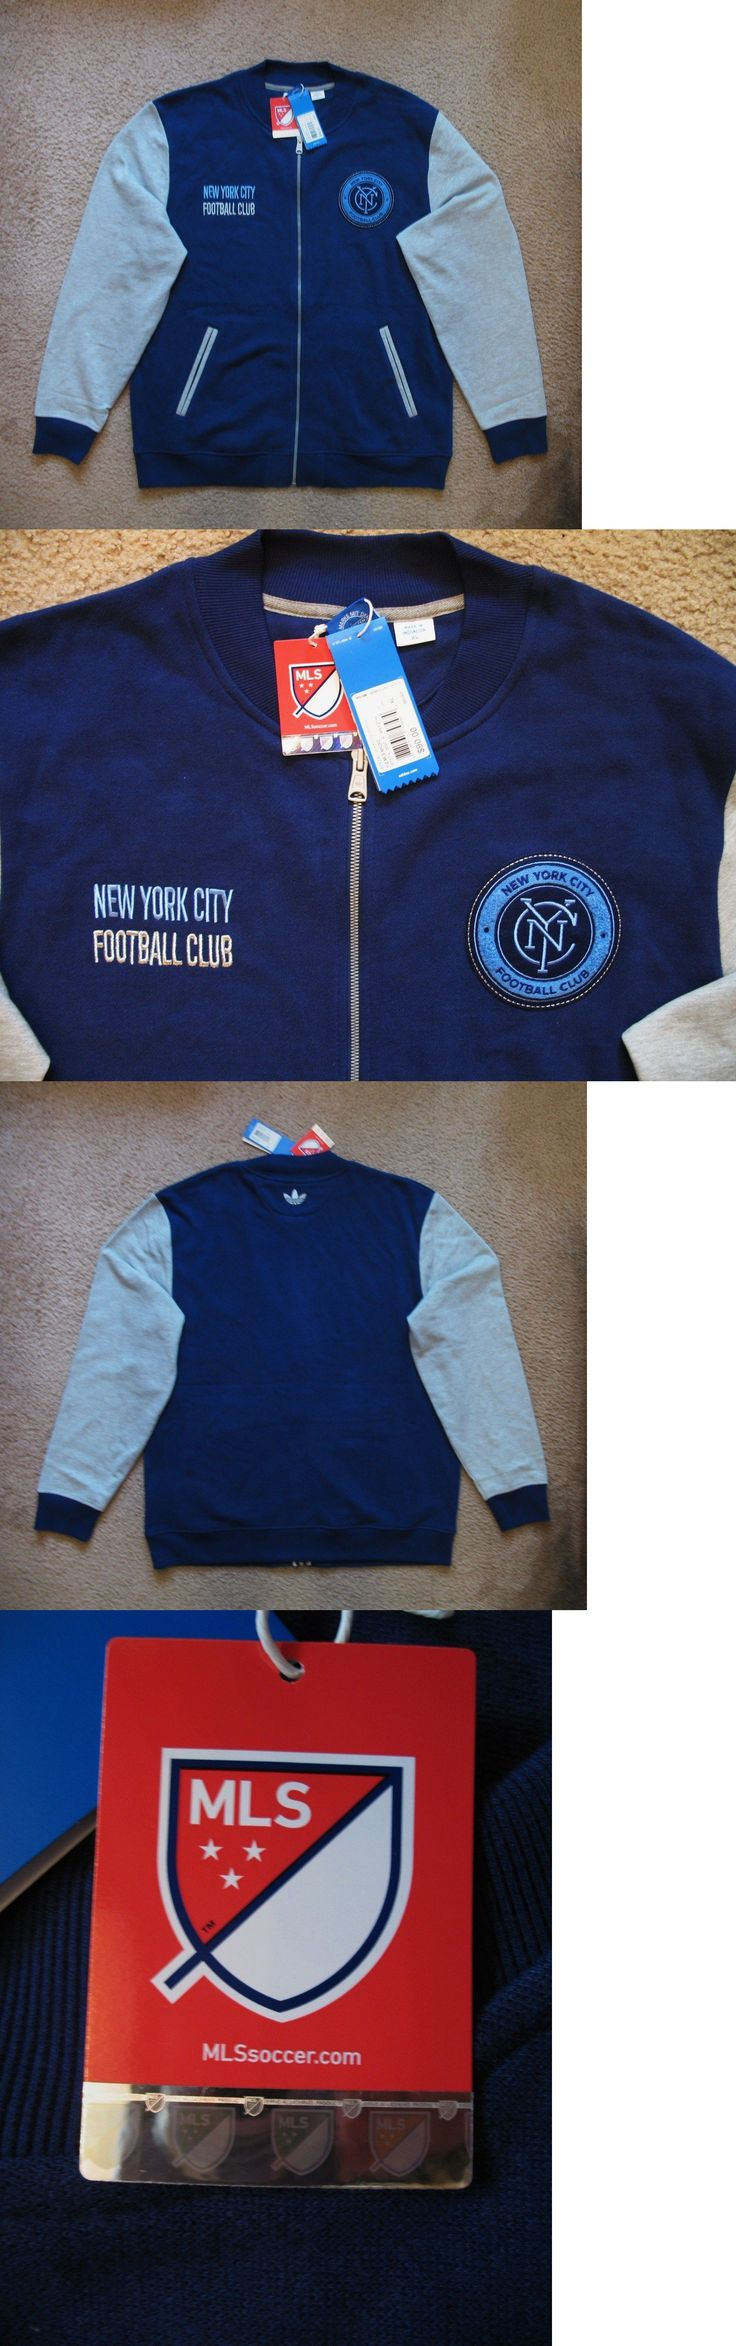 Soccer-MLS 2888: Adidas Originals New York City Fc Fz Jacket Xl New Tags Nwt $90 -> BUY IT NOW ONLY: $49.99 on eBay!